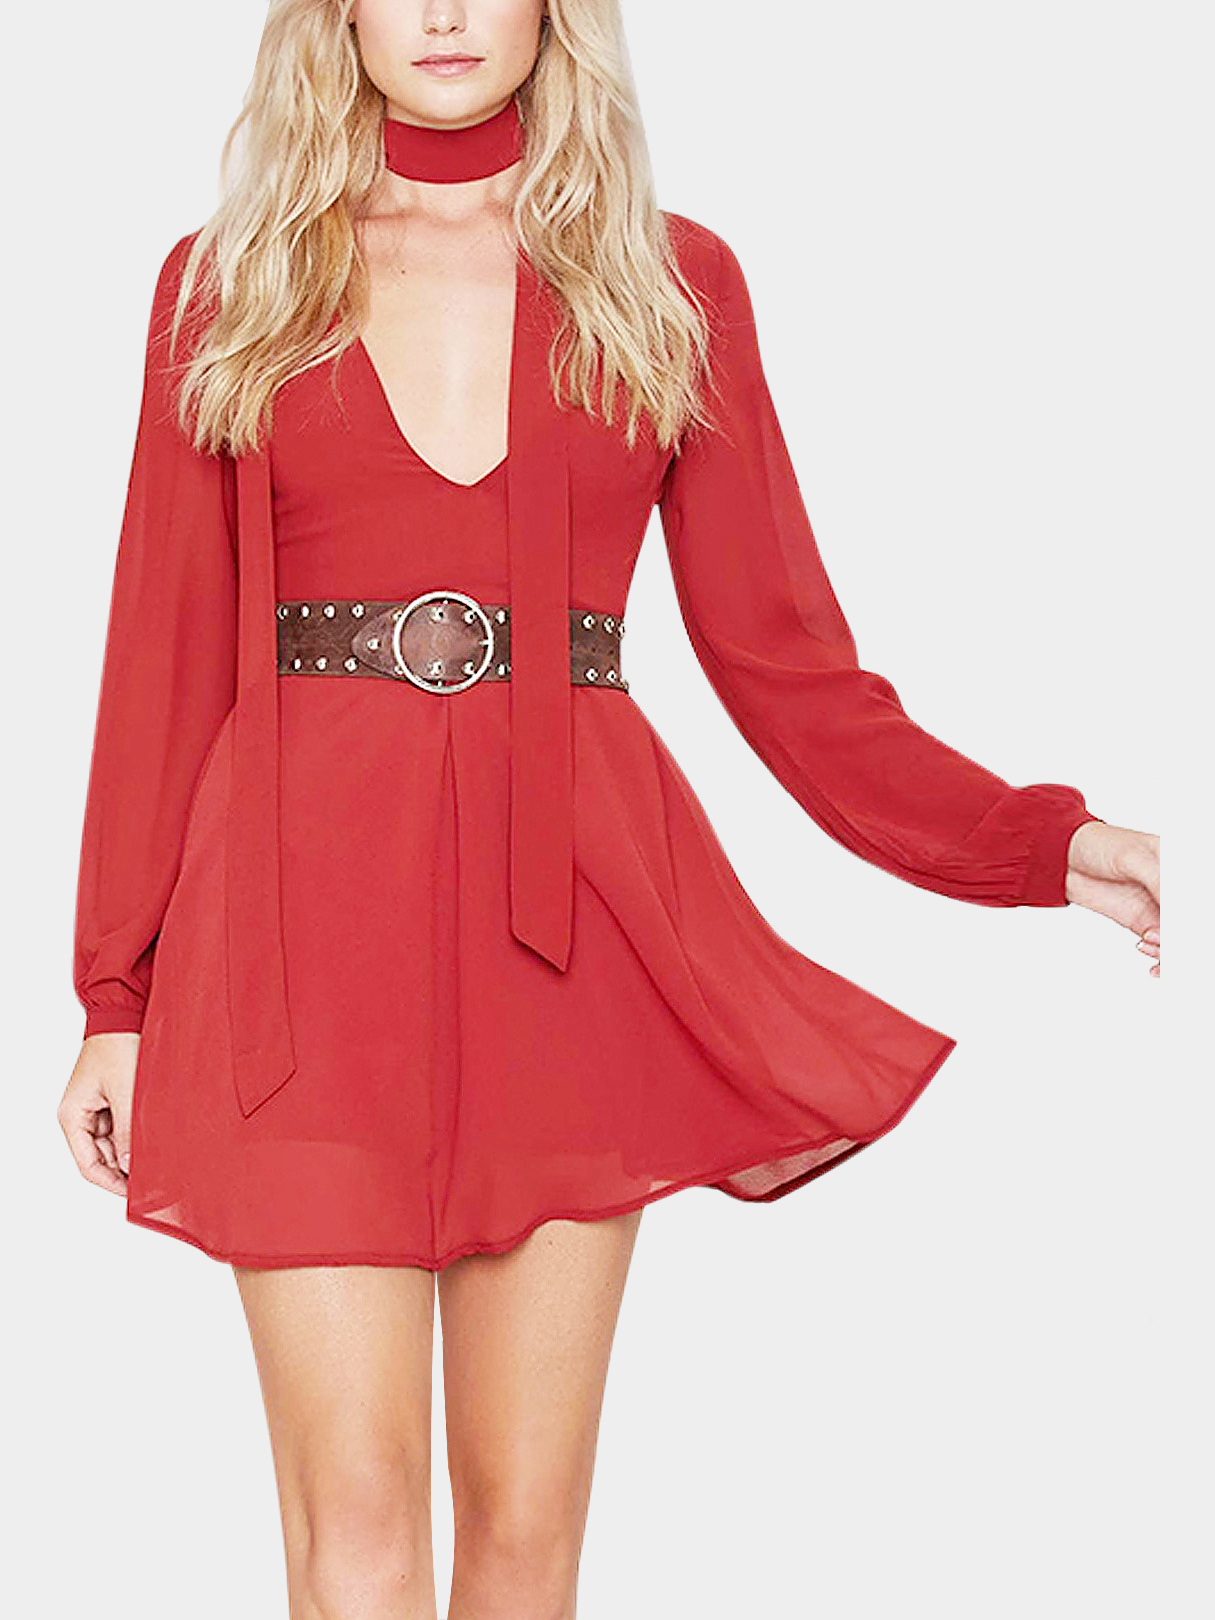 Red Plunging Neck Long Sleeve Dress with Bow